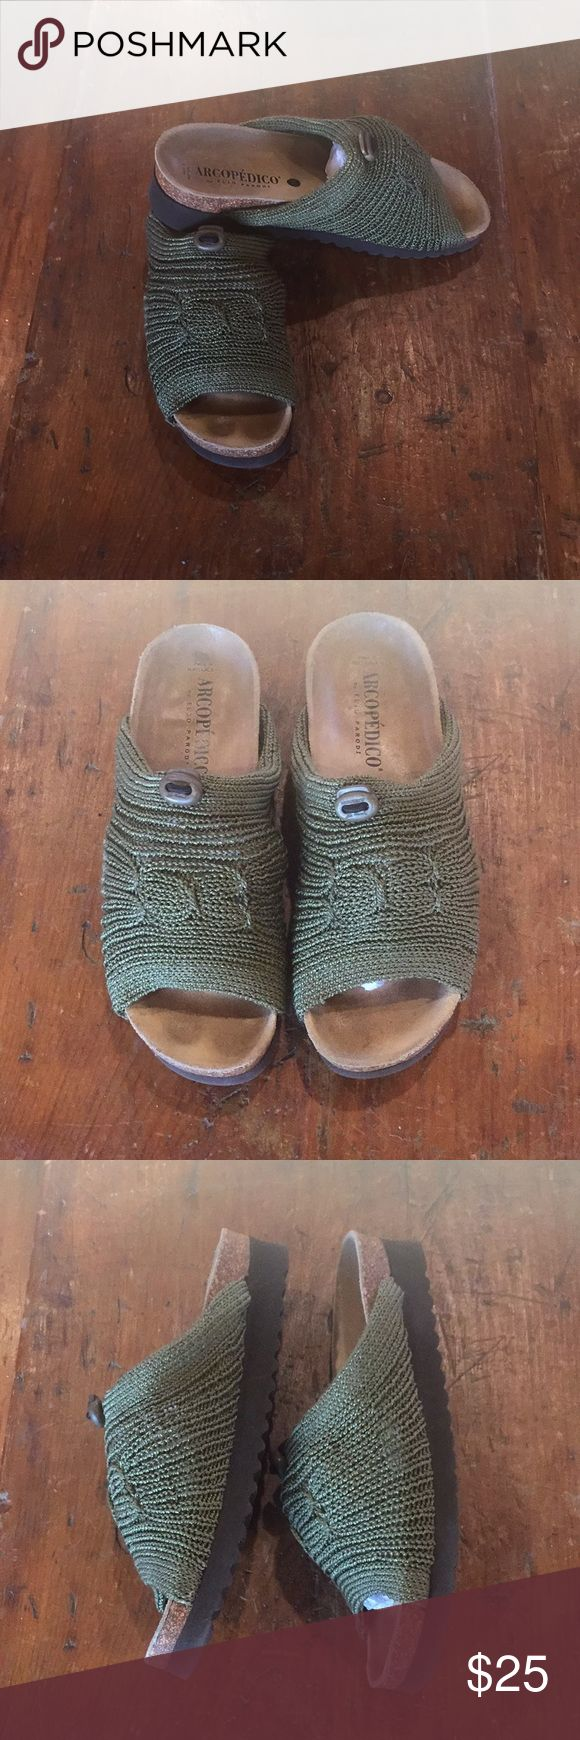 Arcipedico by Elig Parodi Shoe Excellent condition. These are sooo comfy Arcopedico Shoes Sandals